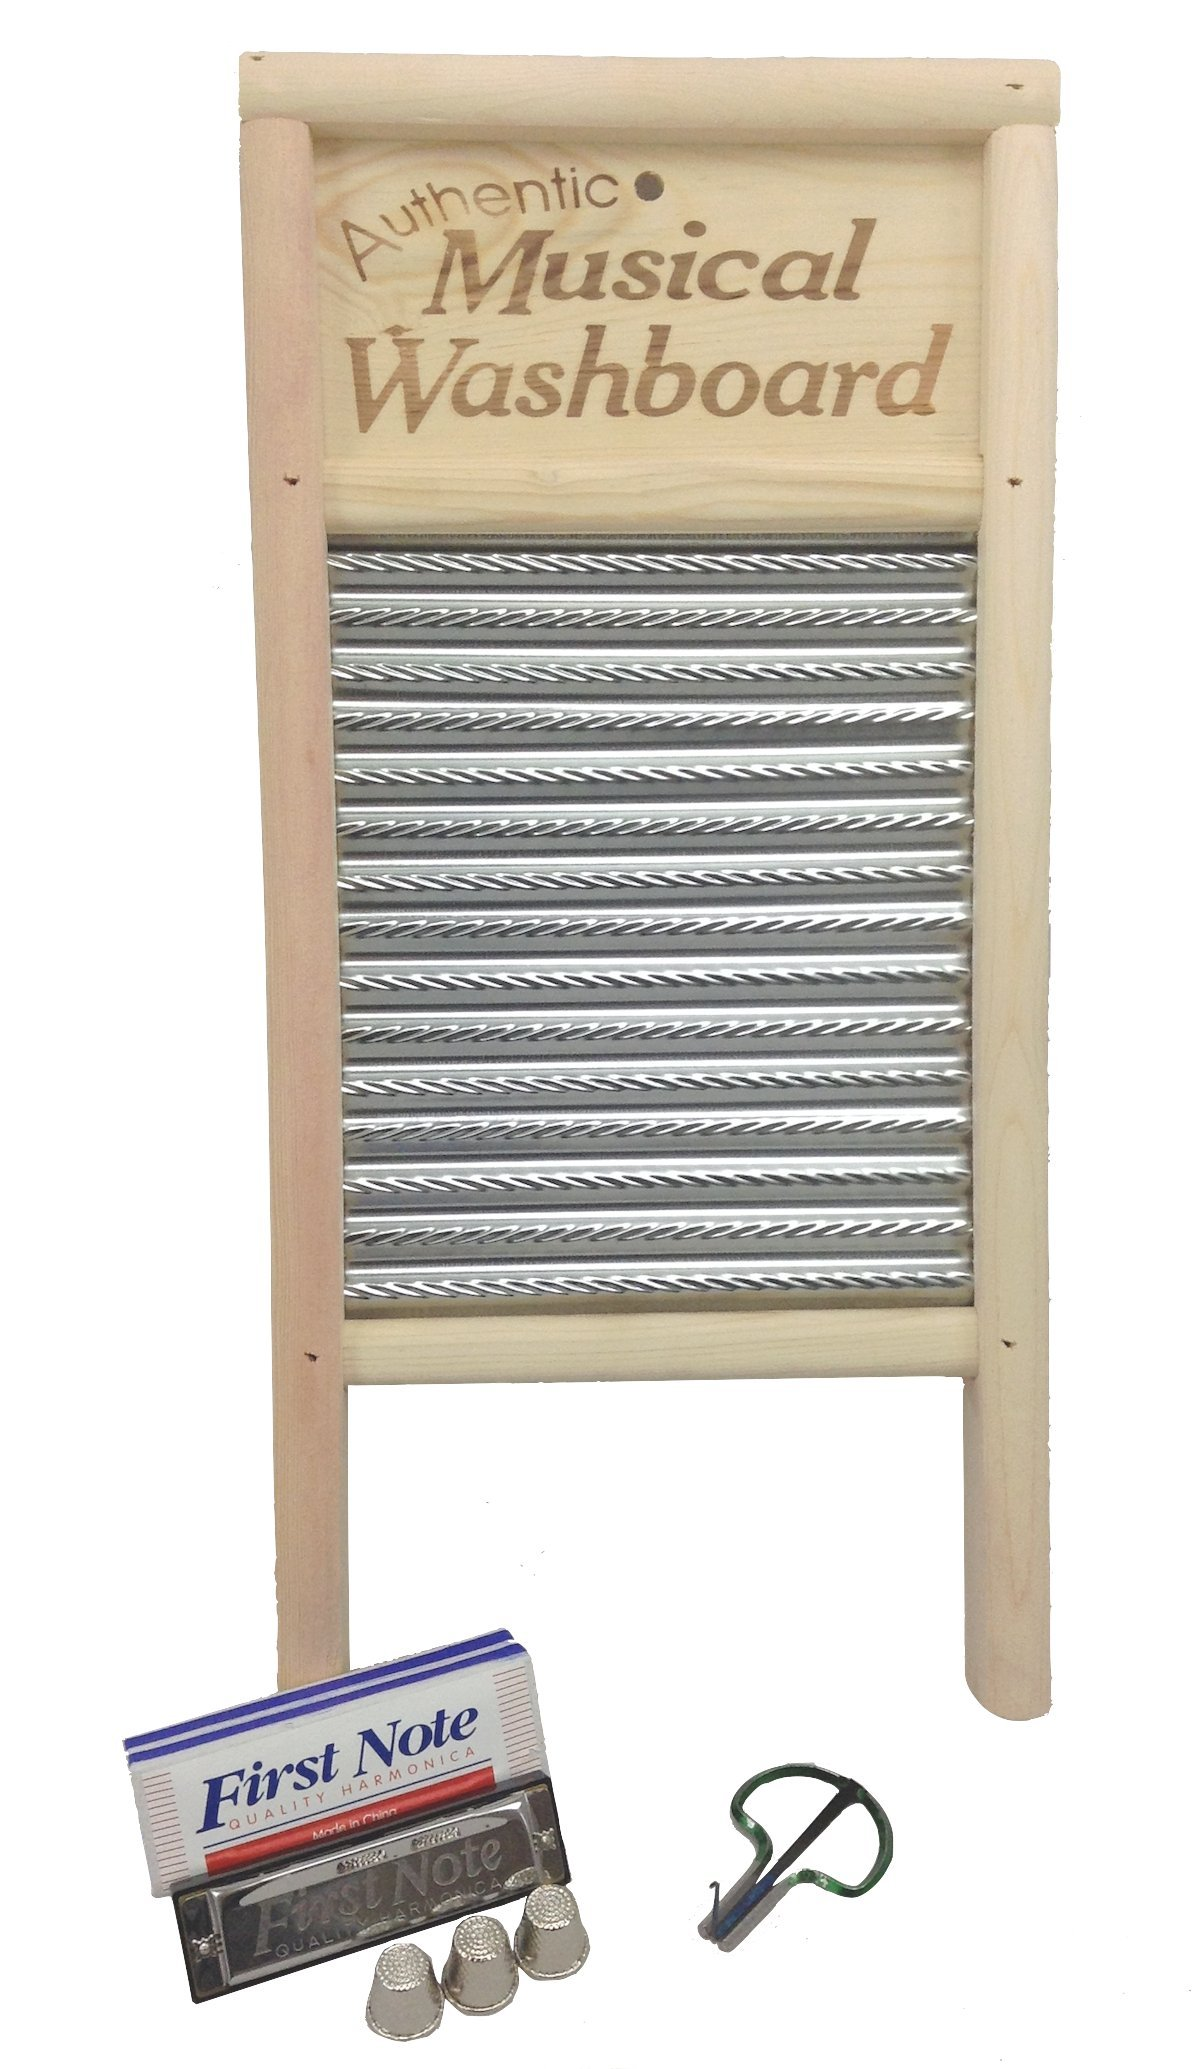 Grover/Trophy Authentic Musical Washboard with Jaw Harp and Harmonica